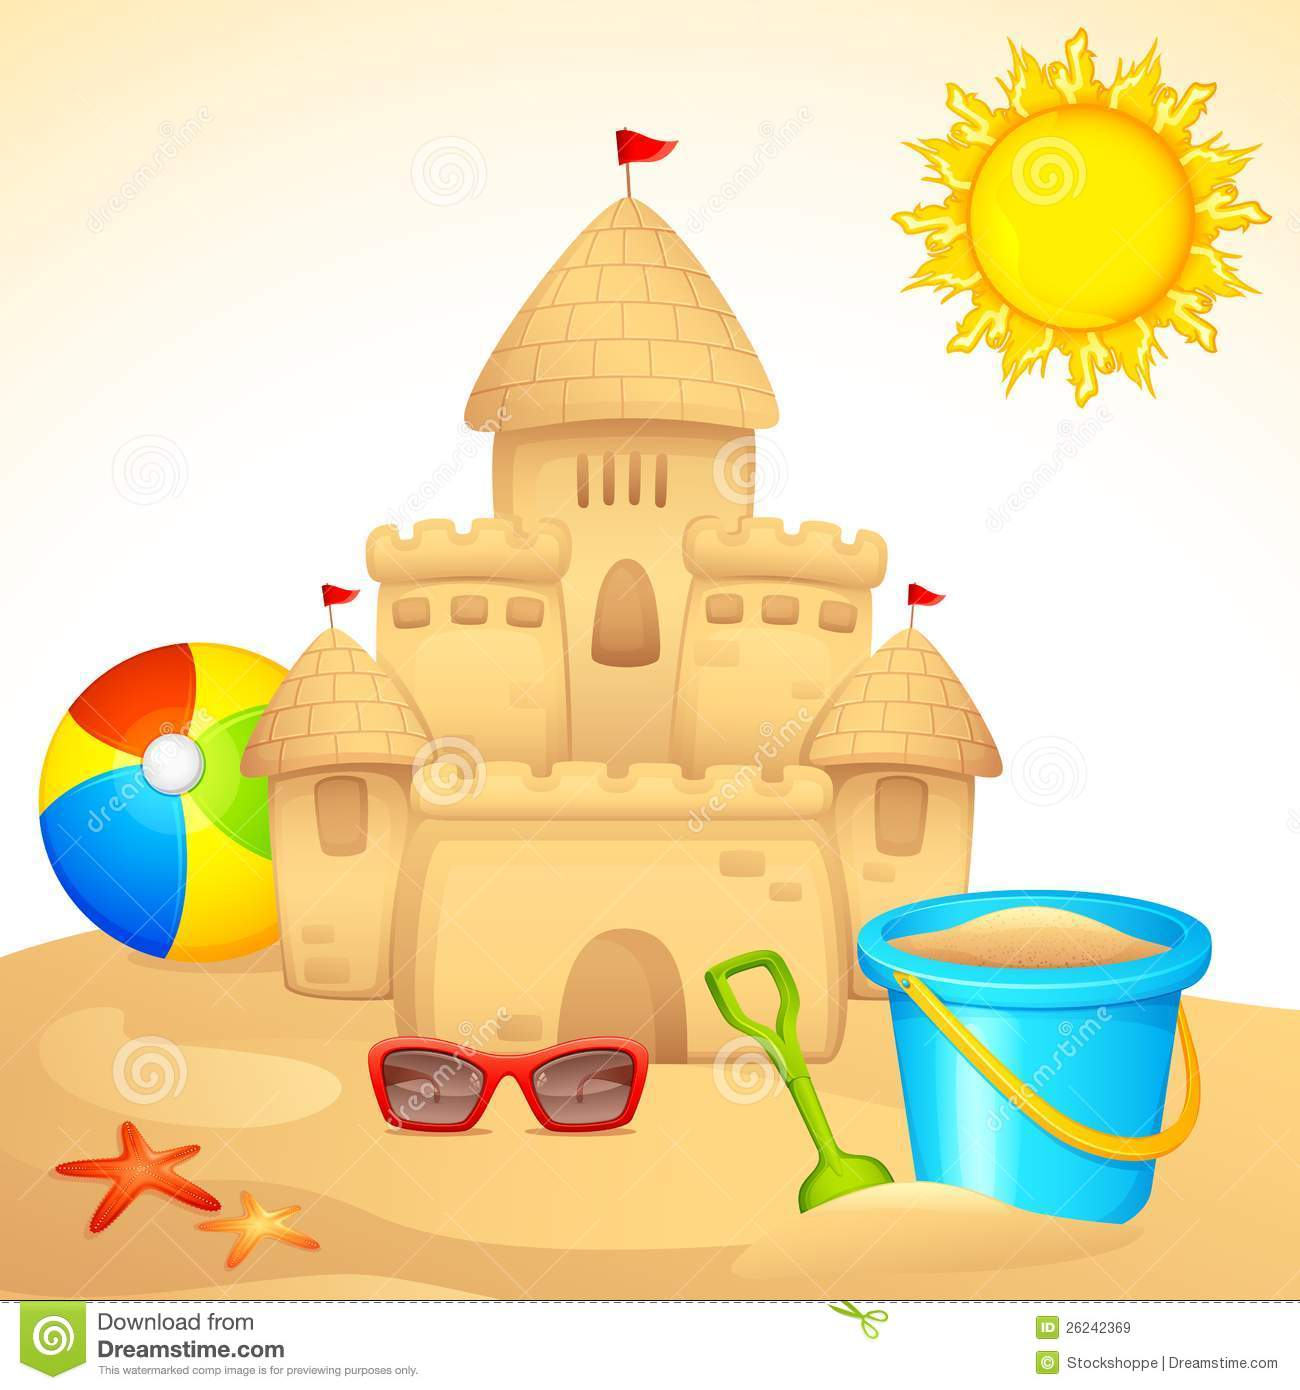 Sand Castle With Sandpit Kit Royalty Free Stock Images - Image ...